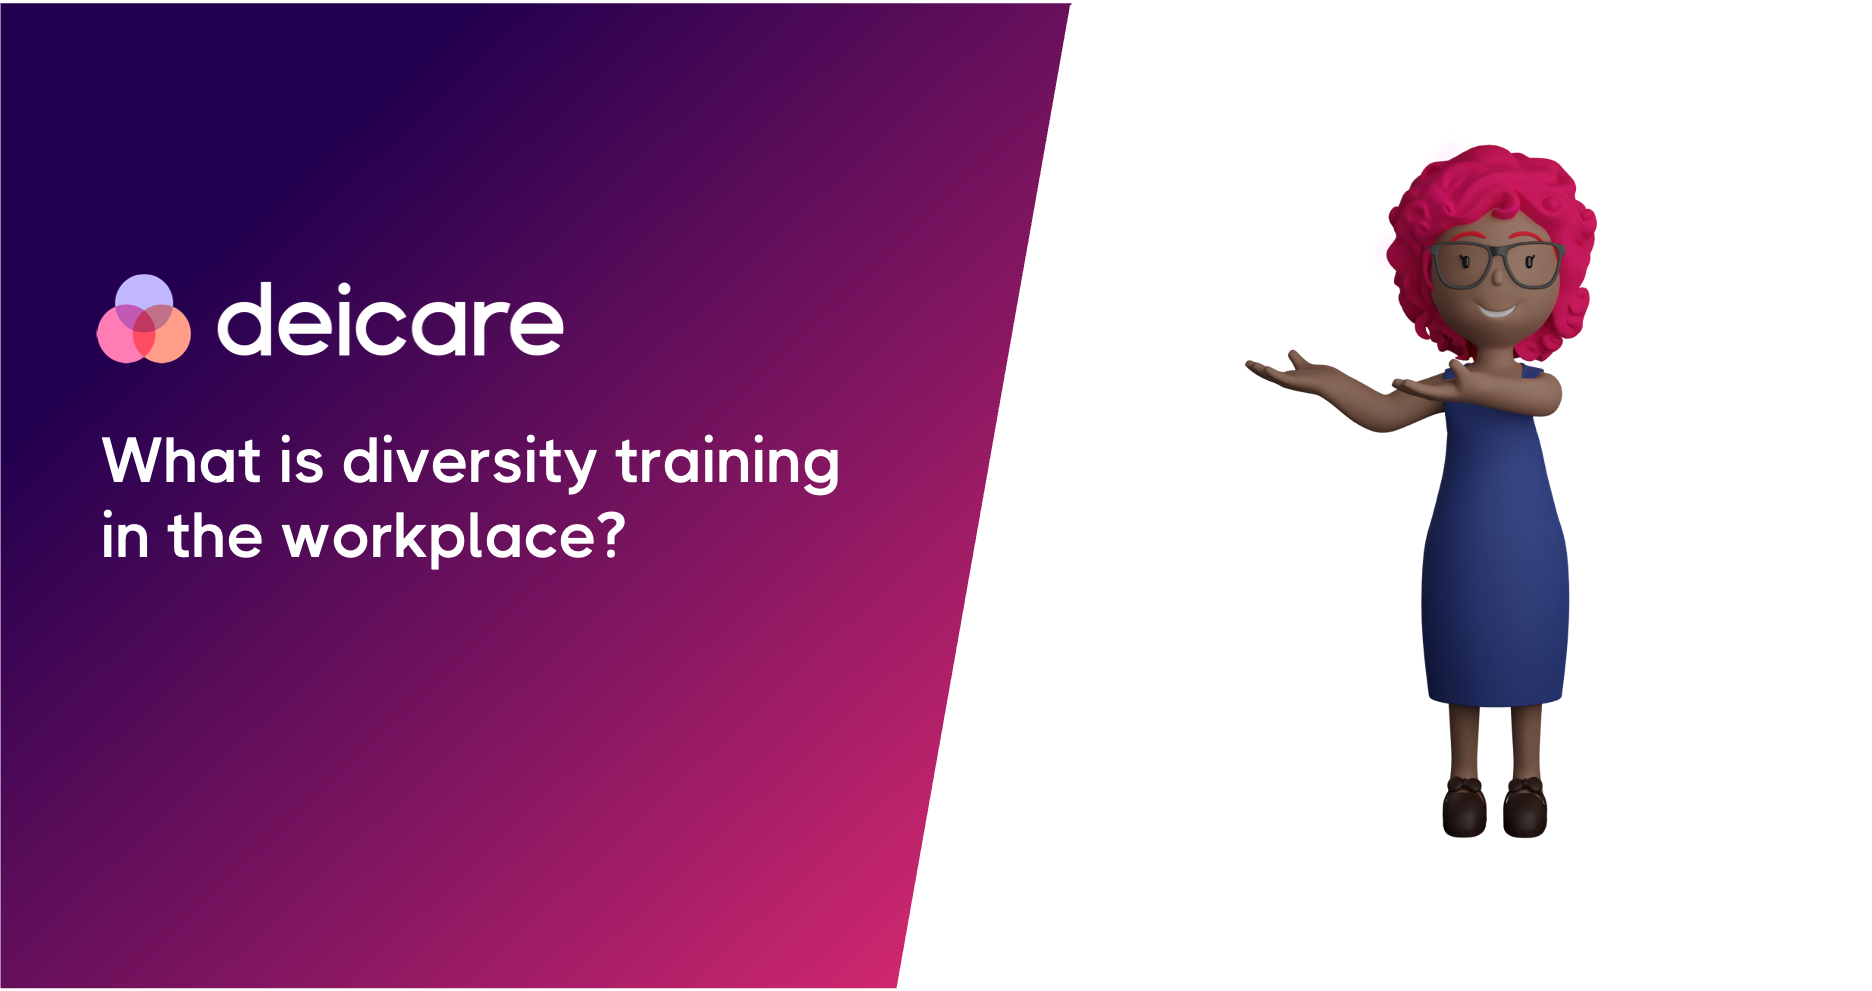 What is diversity training in the workplace?